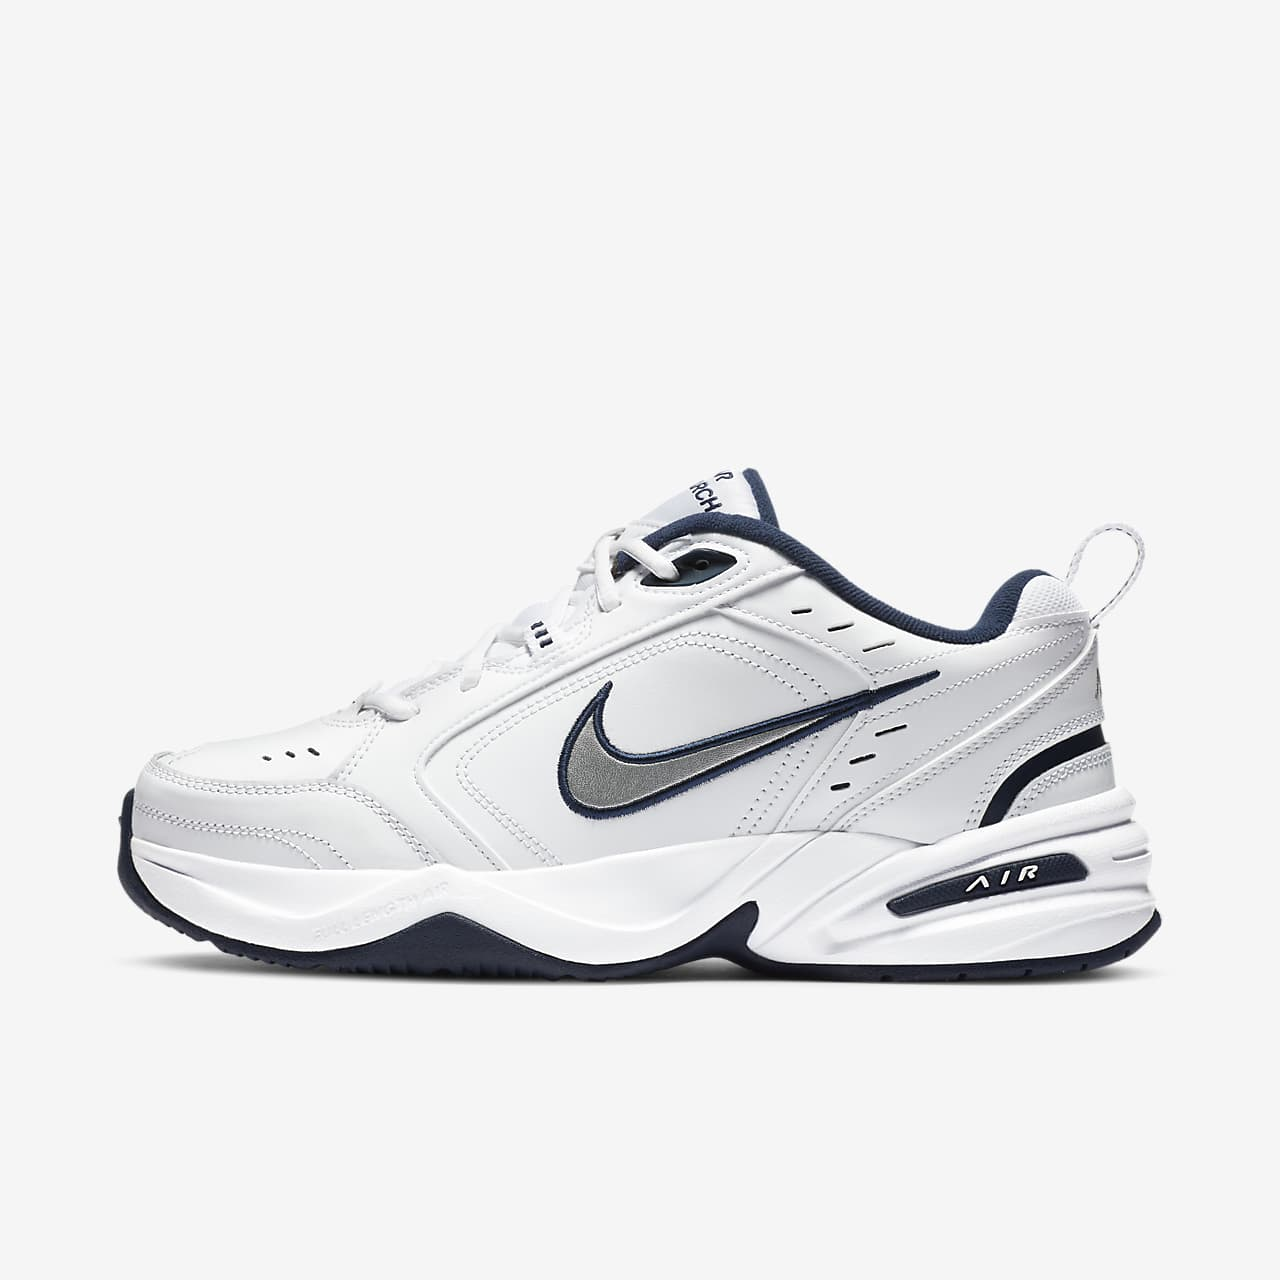 481235ac426e Nike Air Monarch IV Lifestyle/Gym Shoe. Nike.com NZ